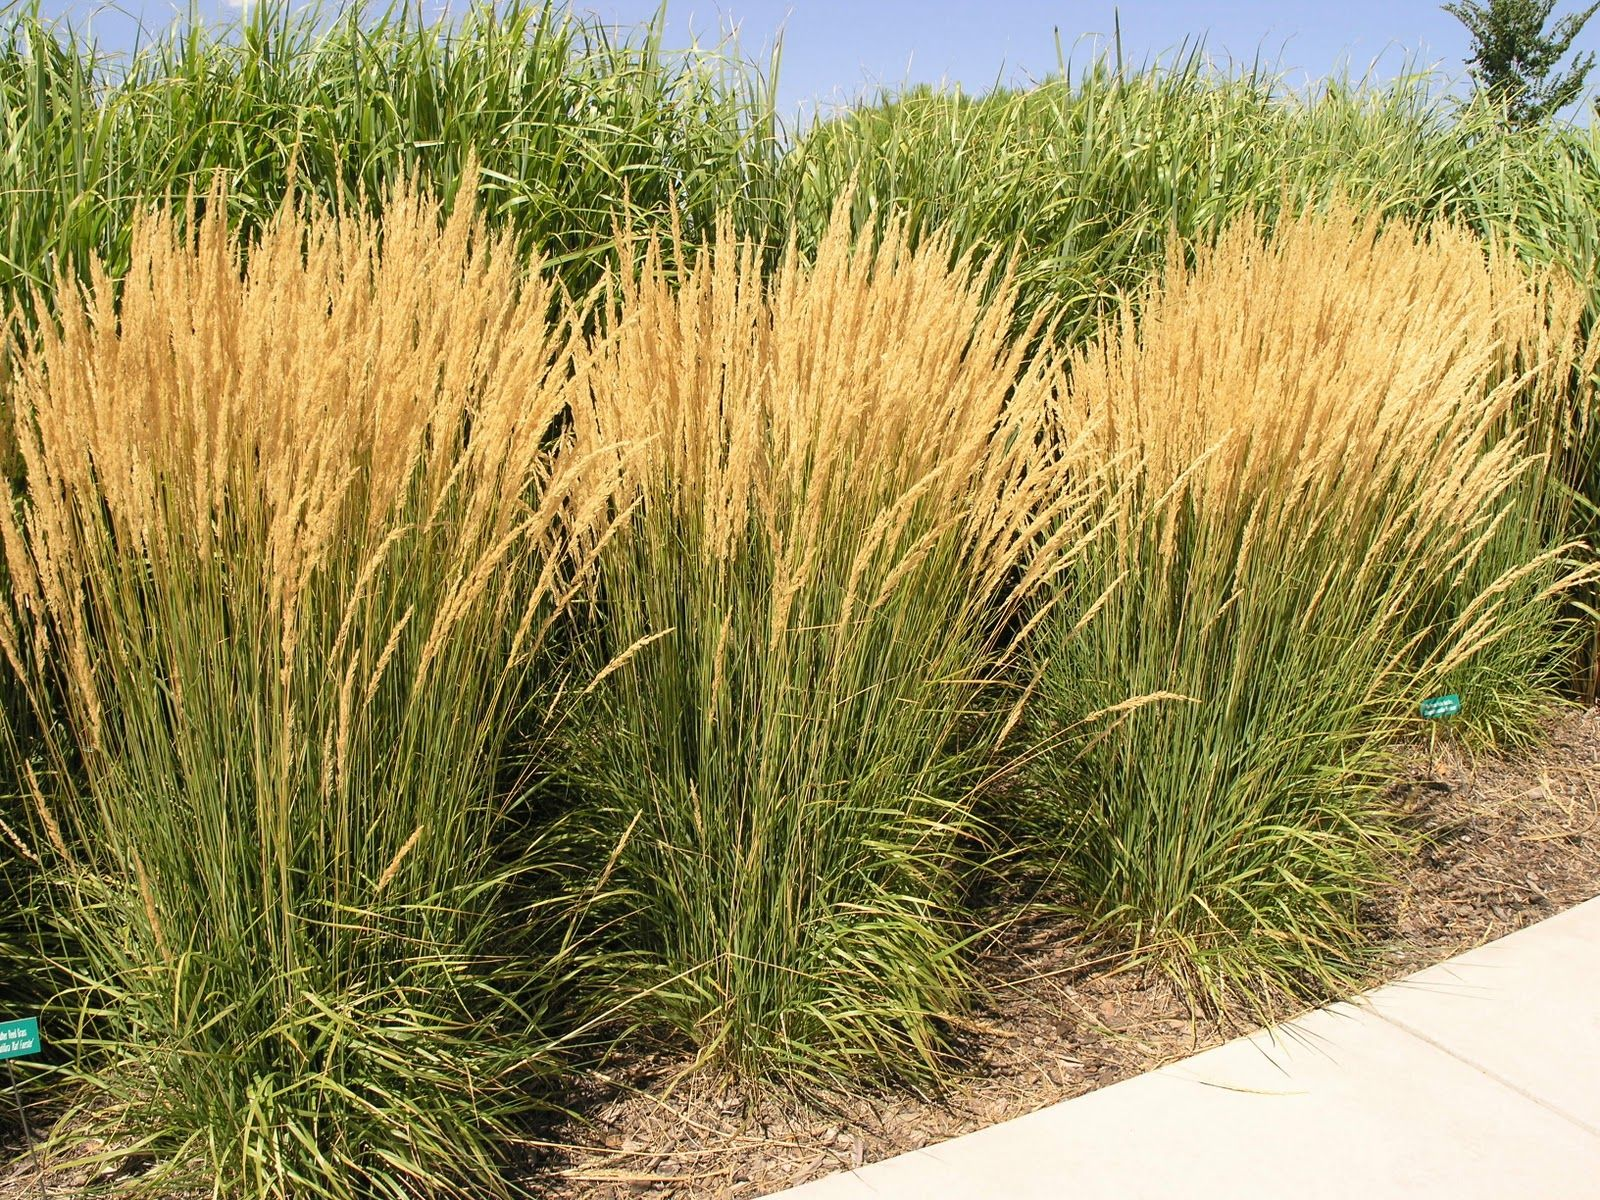 Tall Decorative Grass Karl Forester Grass My Favorite Decorative Grass Need 6 For